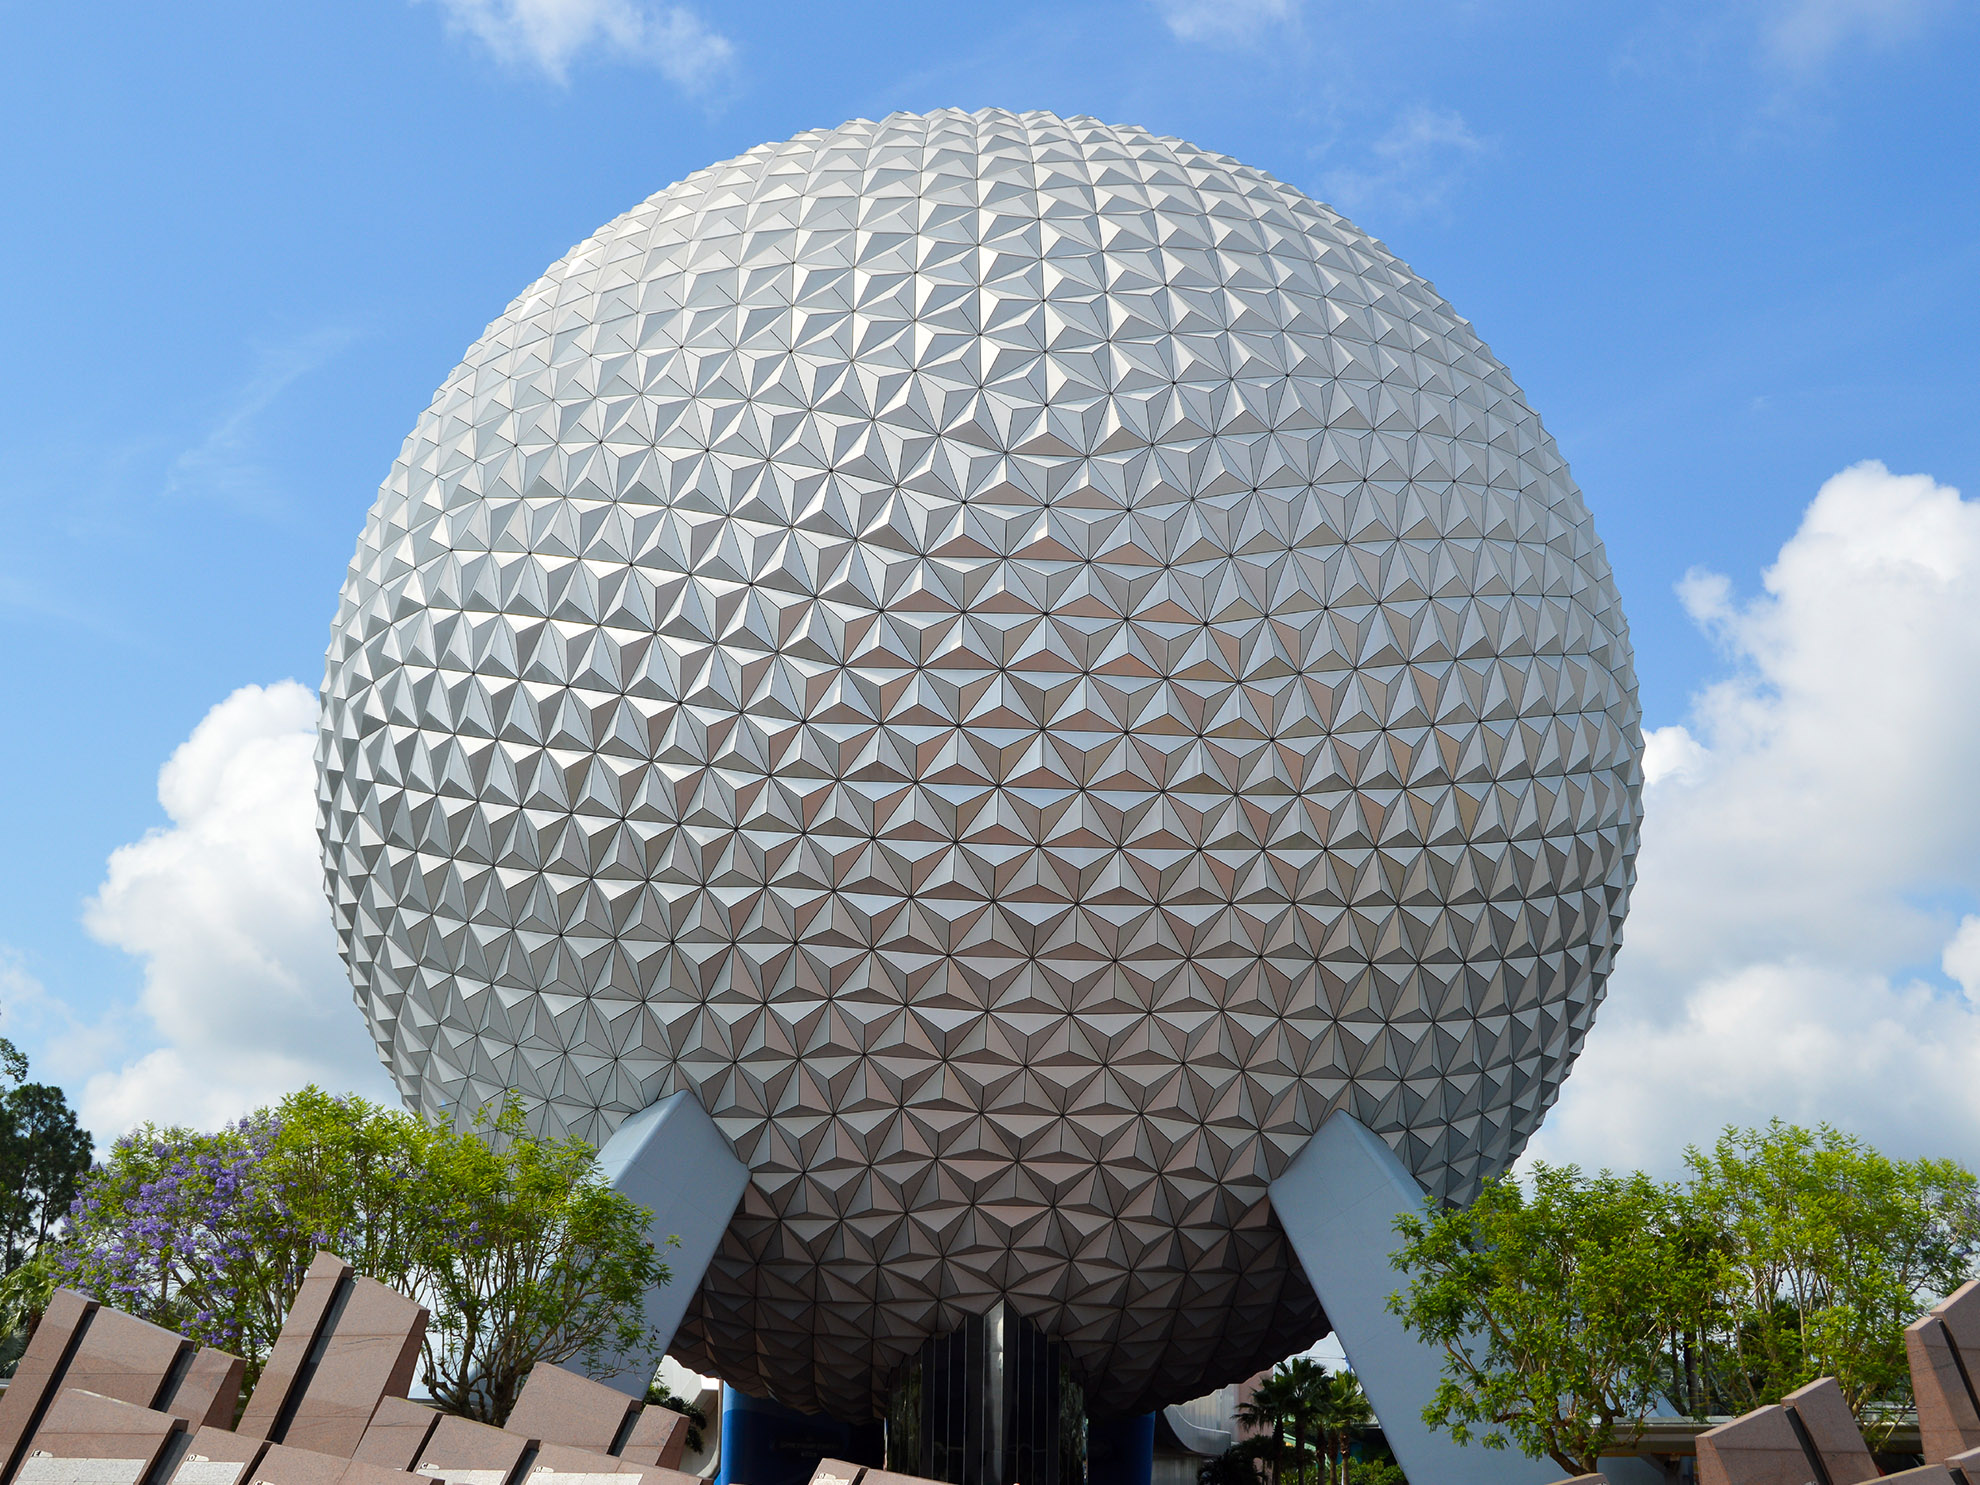 Spaceship Earth at Epcot - Orlando, Florida